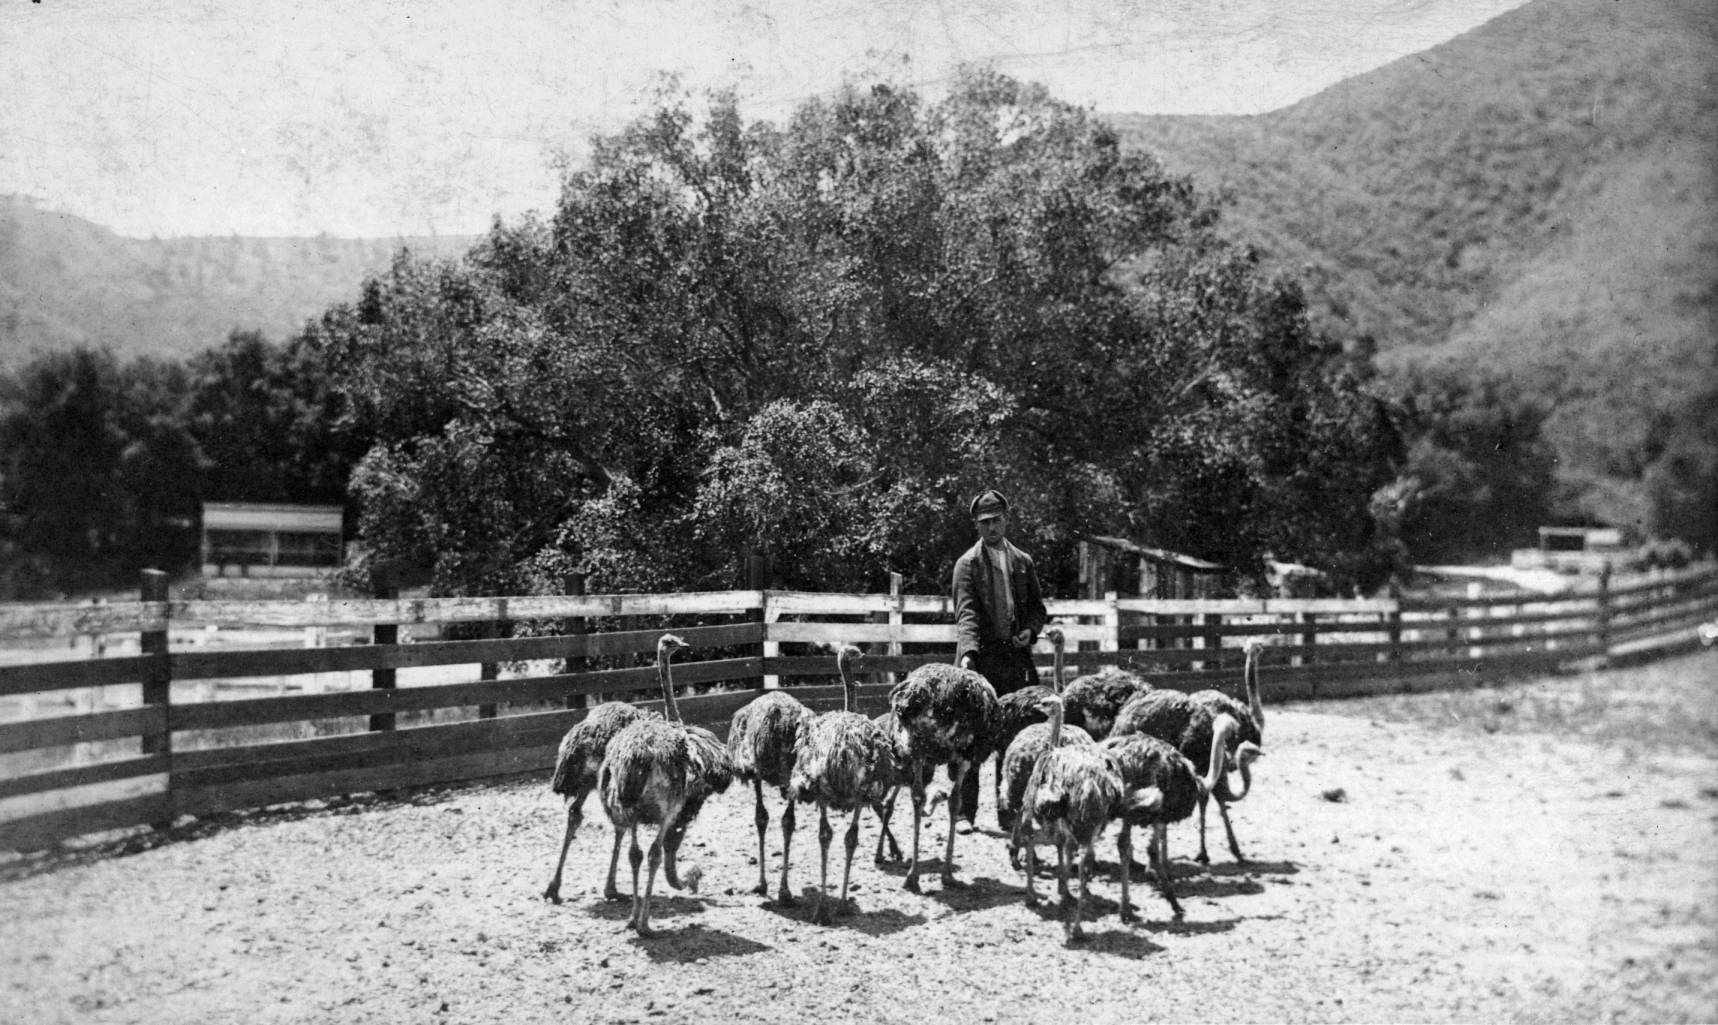 Sketchley's ostrich farm in Rancho Los Feliz, circa 1886. Courtesy of the California Historical Society Collection, USC Libraries.